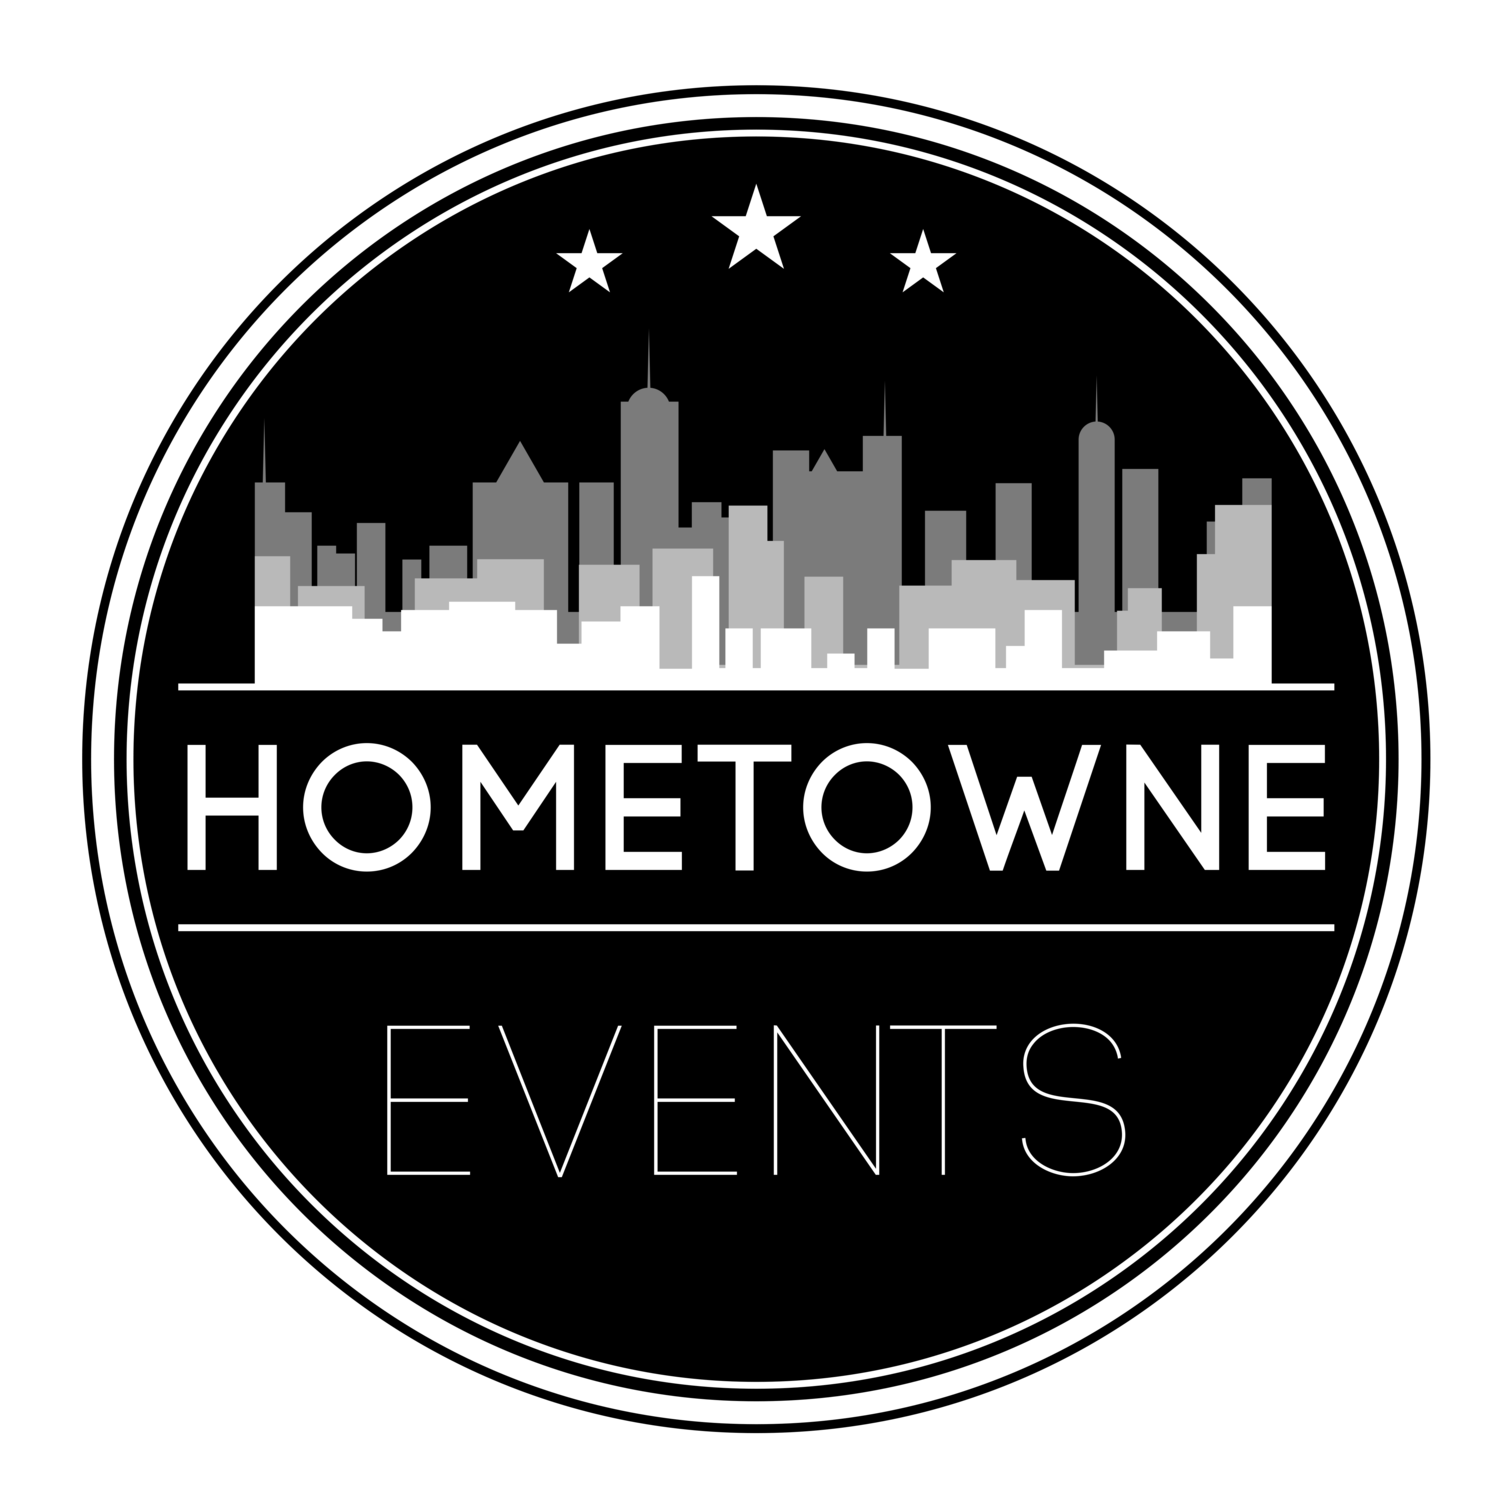 Hometowne Events